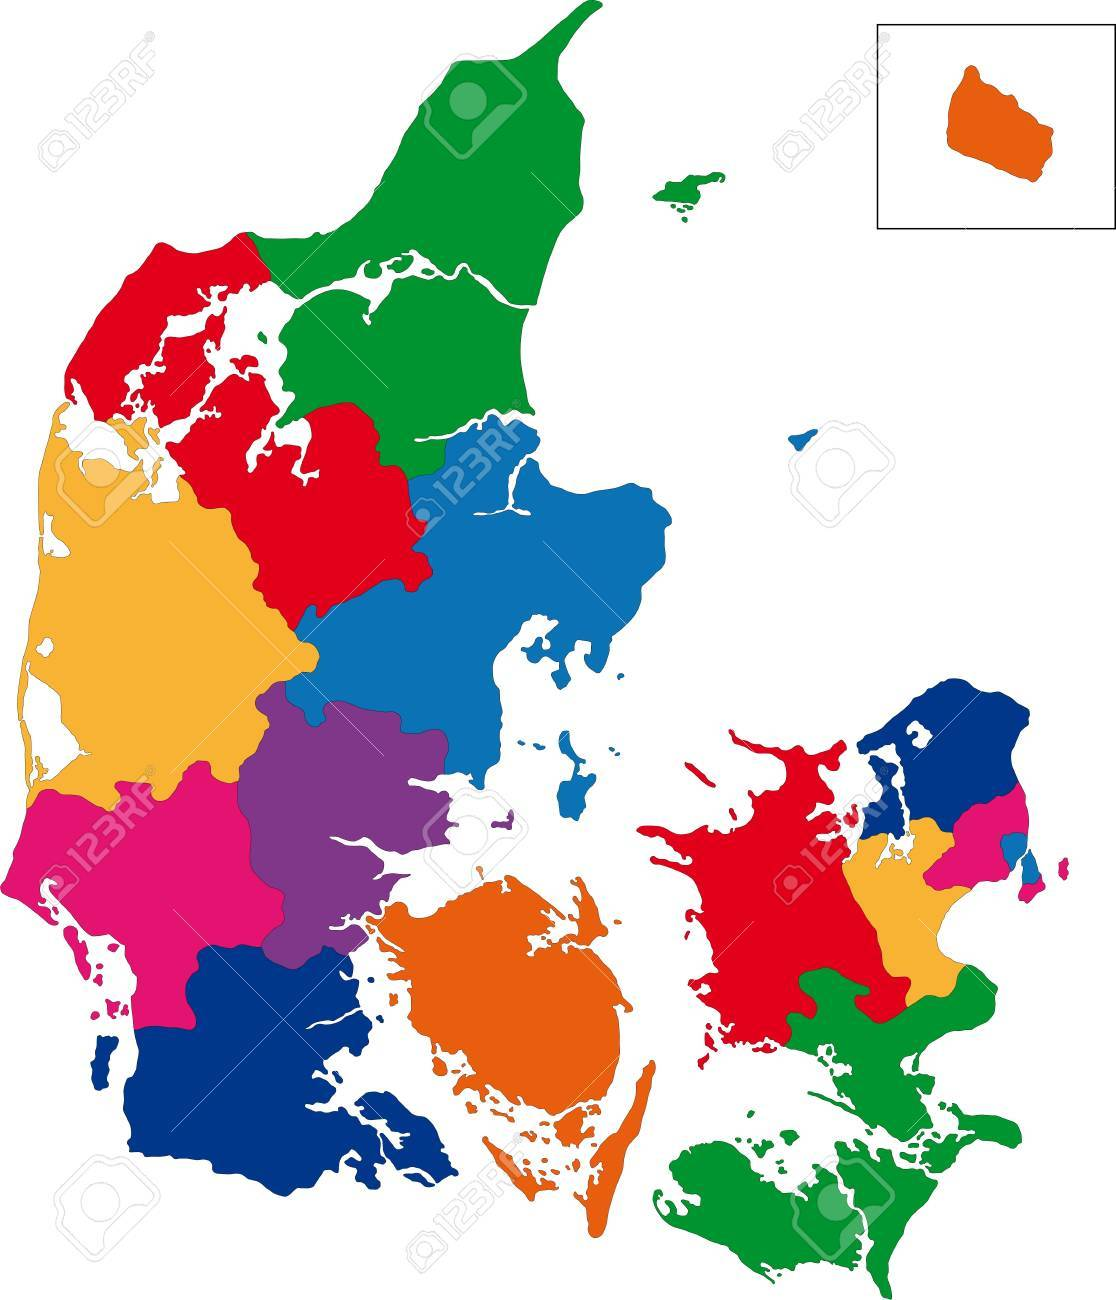 Map Of Administrative Divisions Of Denmark Royalty Free Cliparts